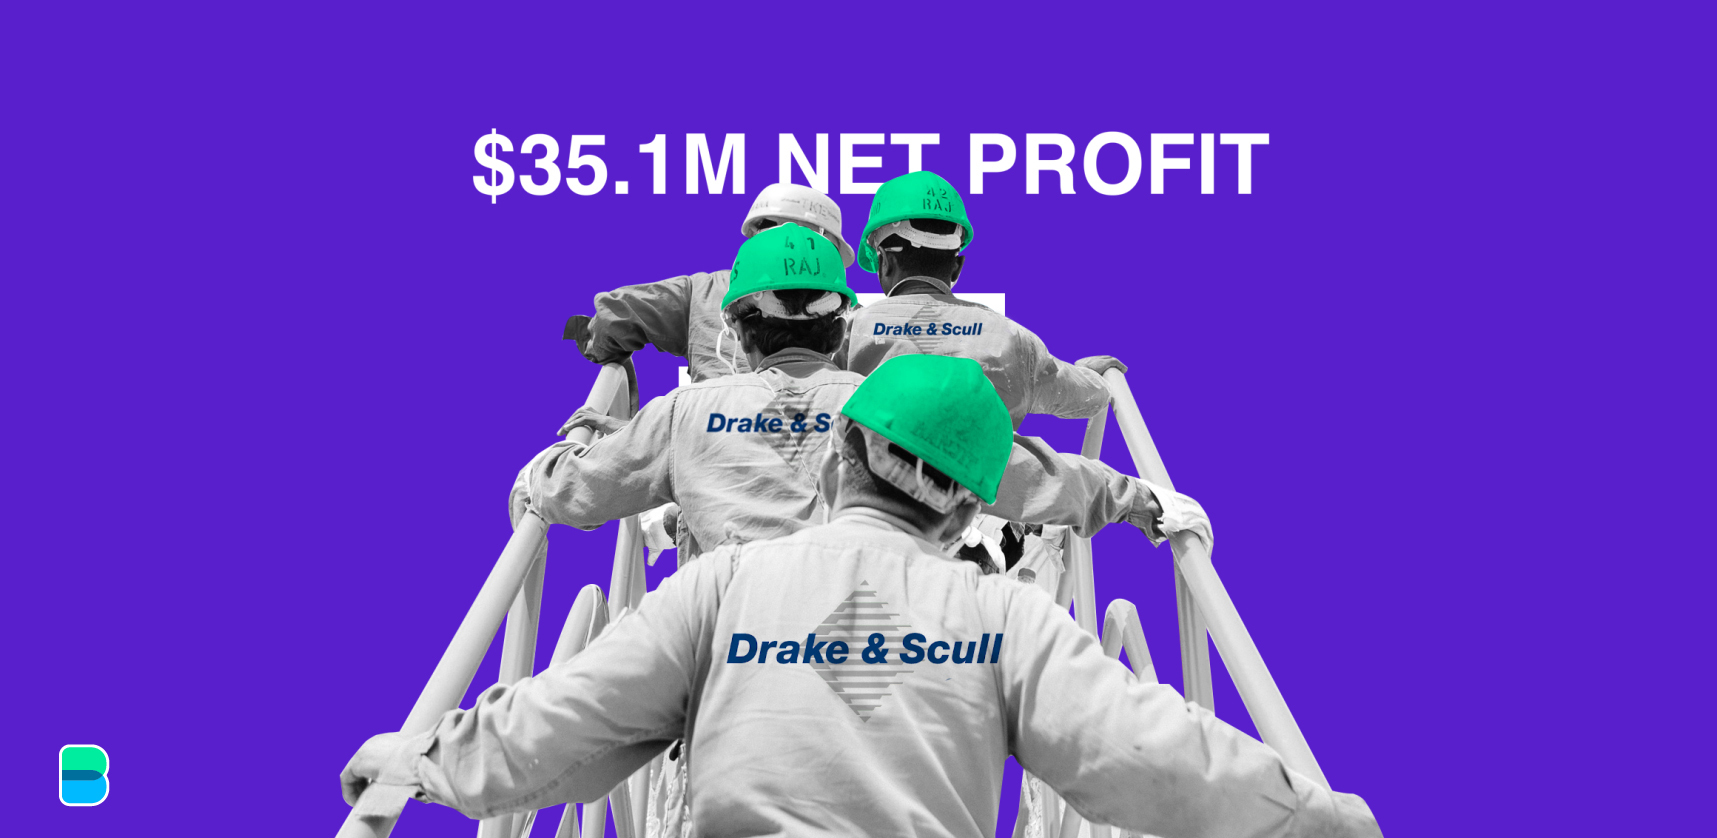 Drake & Scull made it through the year profitable